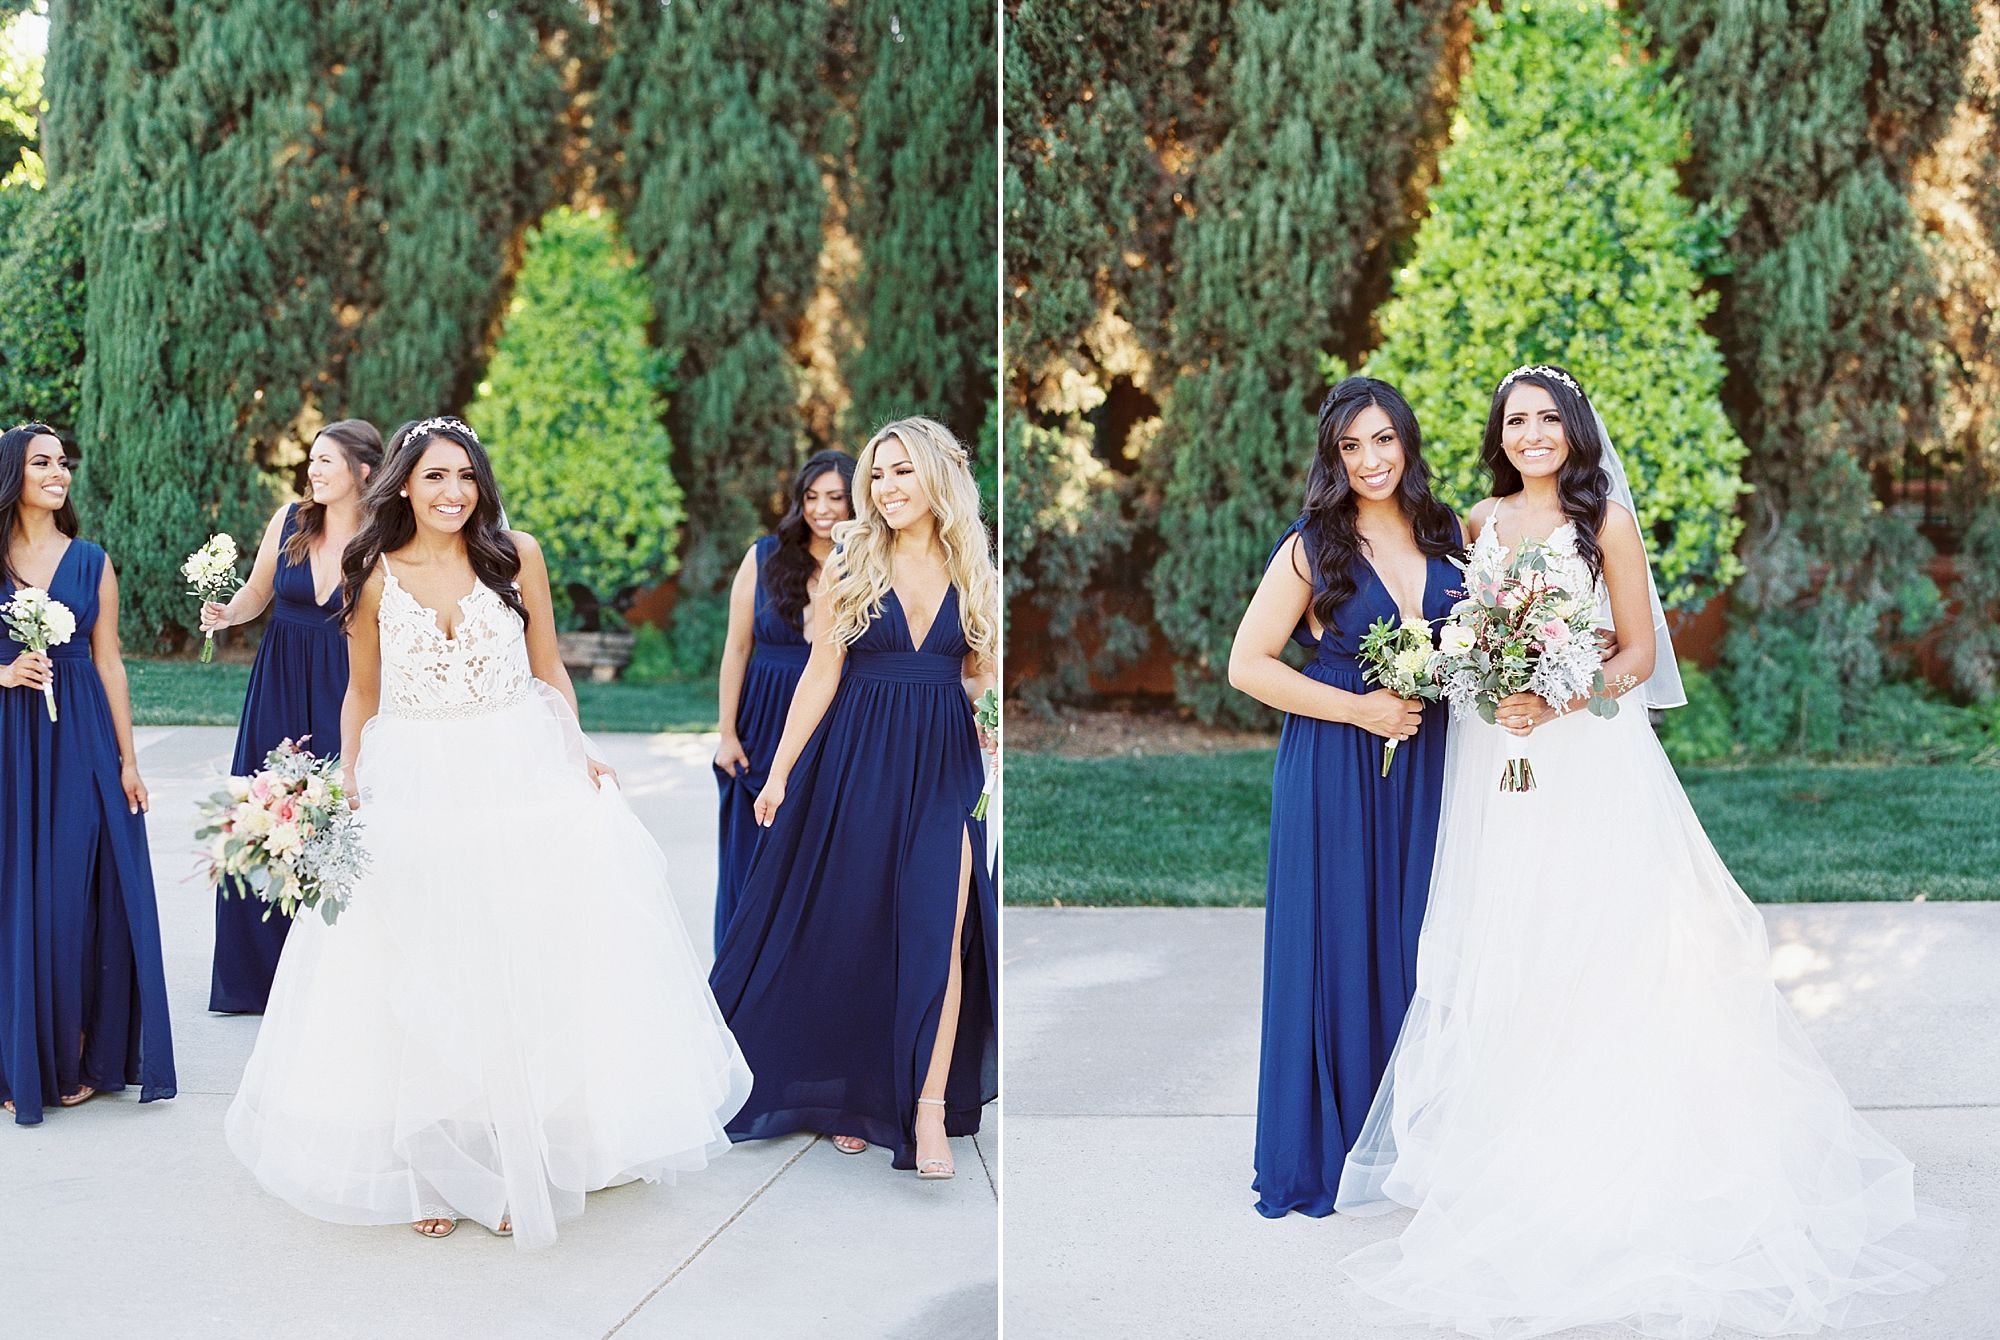 The River Mill Wedding Stockton - Ashley Baumgartner - Stockton Wedding Photographer - Sacramento Wedding Photography - Hybrid and Film Photographer - Sacramento Film Photographer_0026.jpg